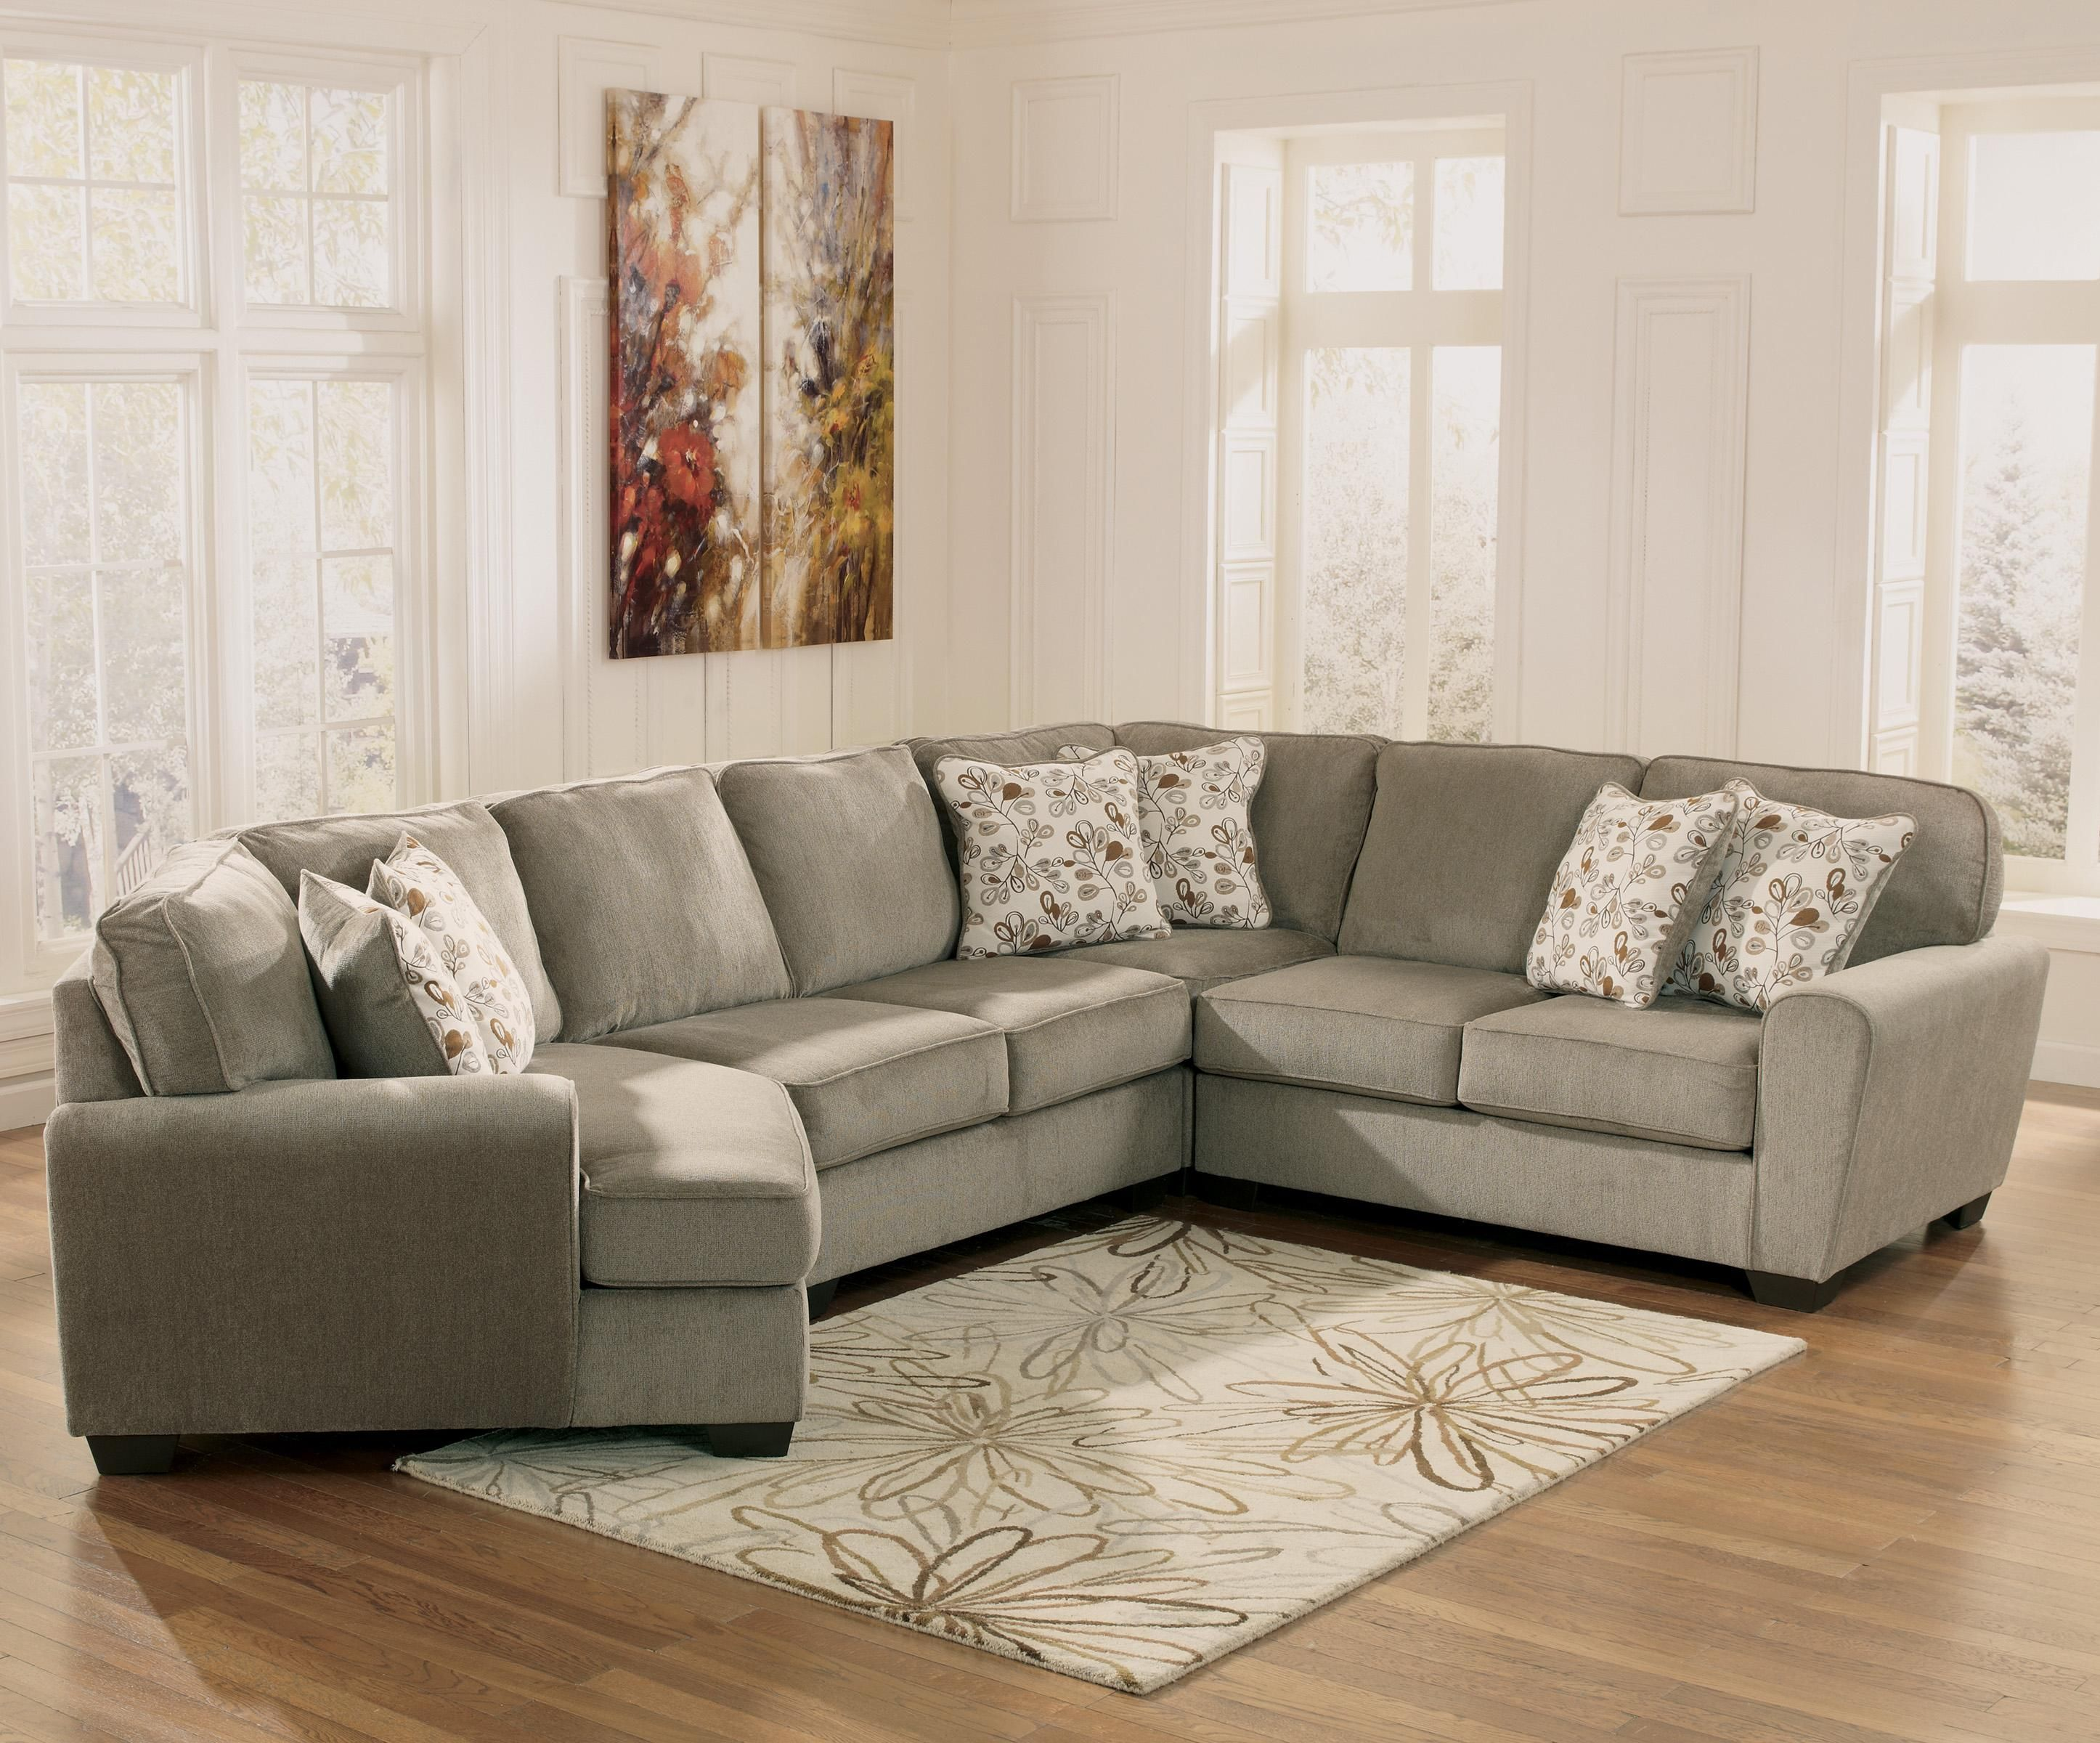 Patola Park Patina 4 Piece Small Sectional with Left Cuddler by